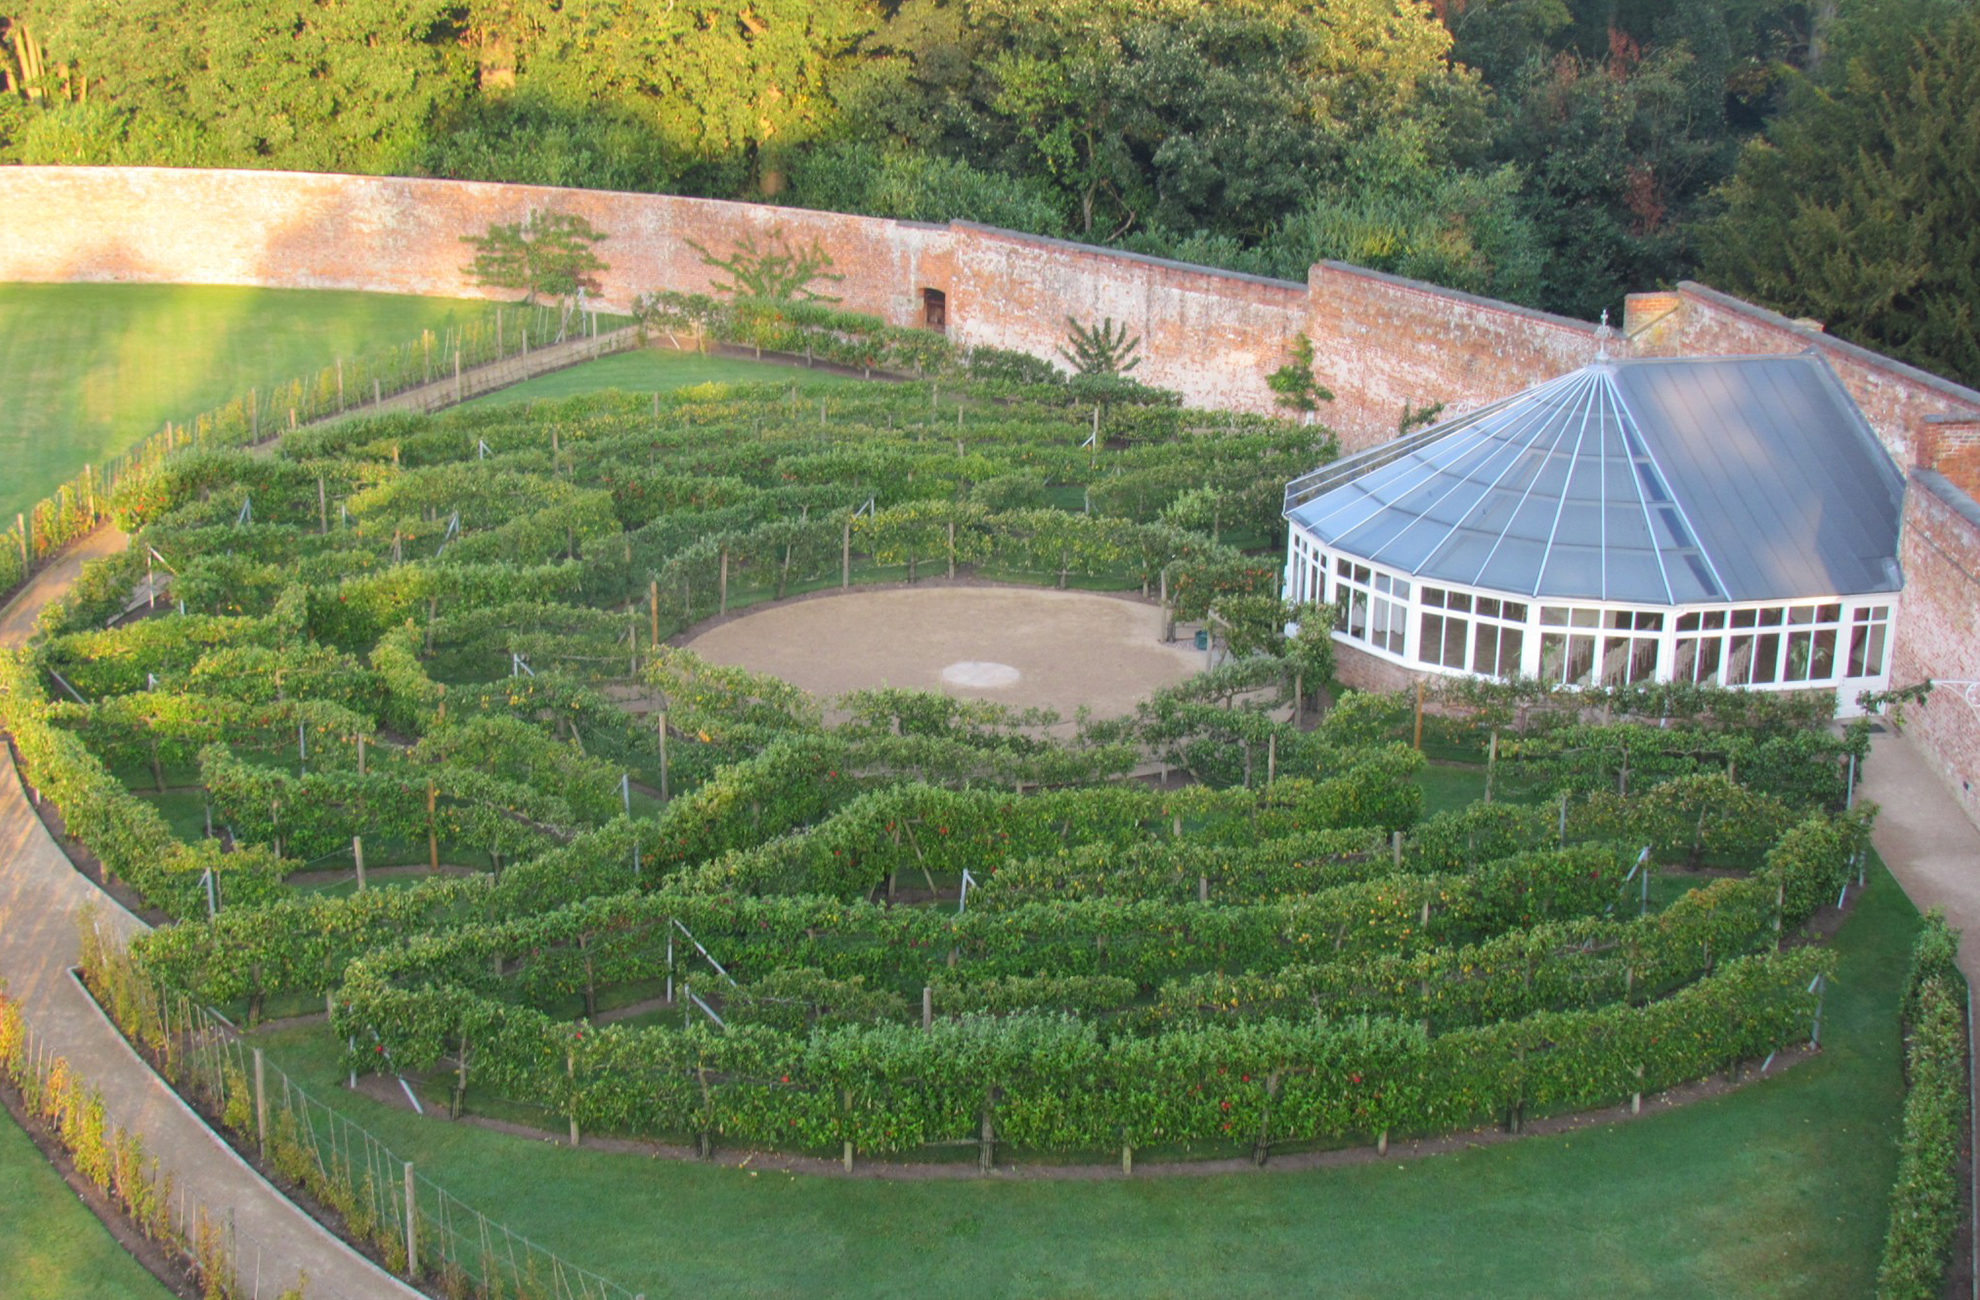 Aerial View of the Glasshouse at Combermere Abbey, estate, wedding venue and accommodation in Cheshire